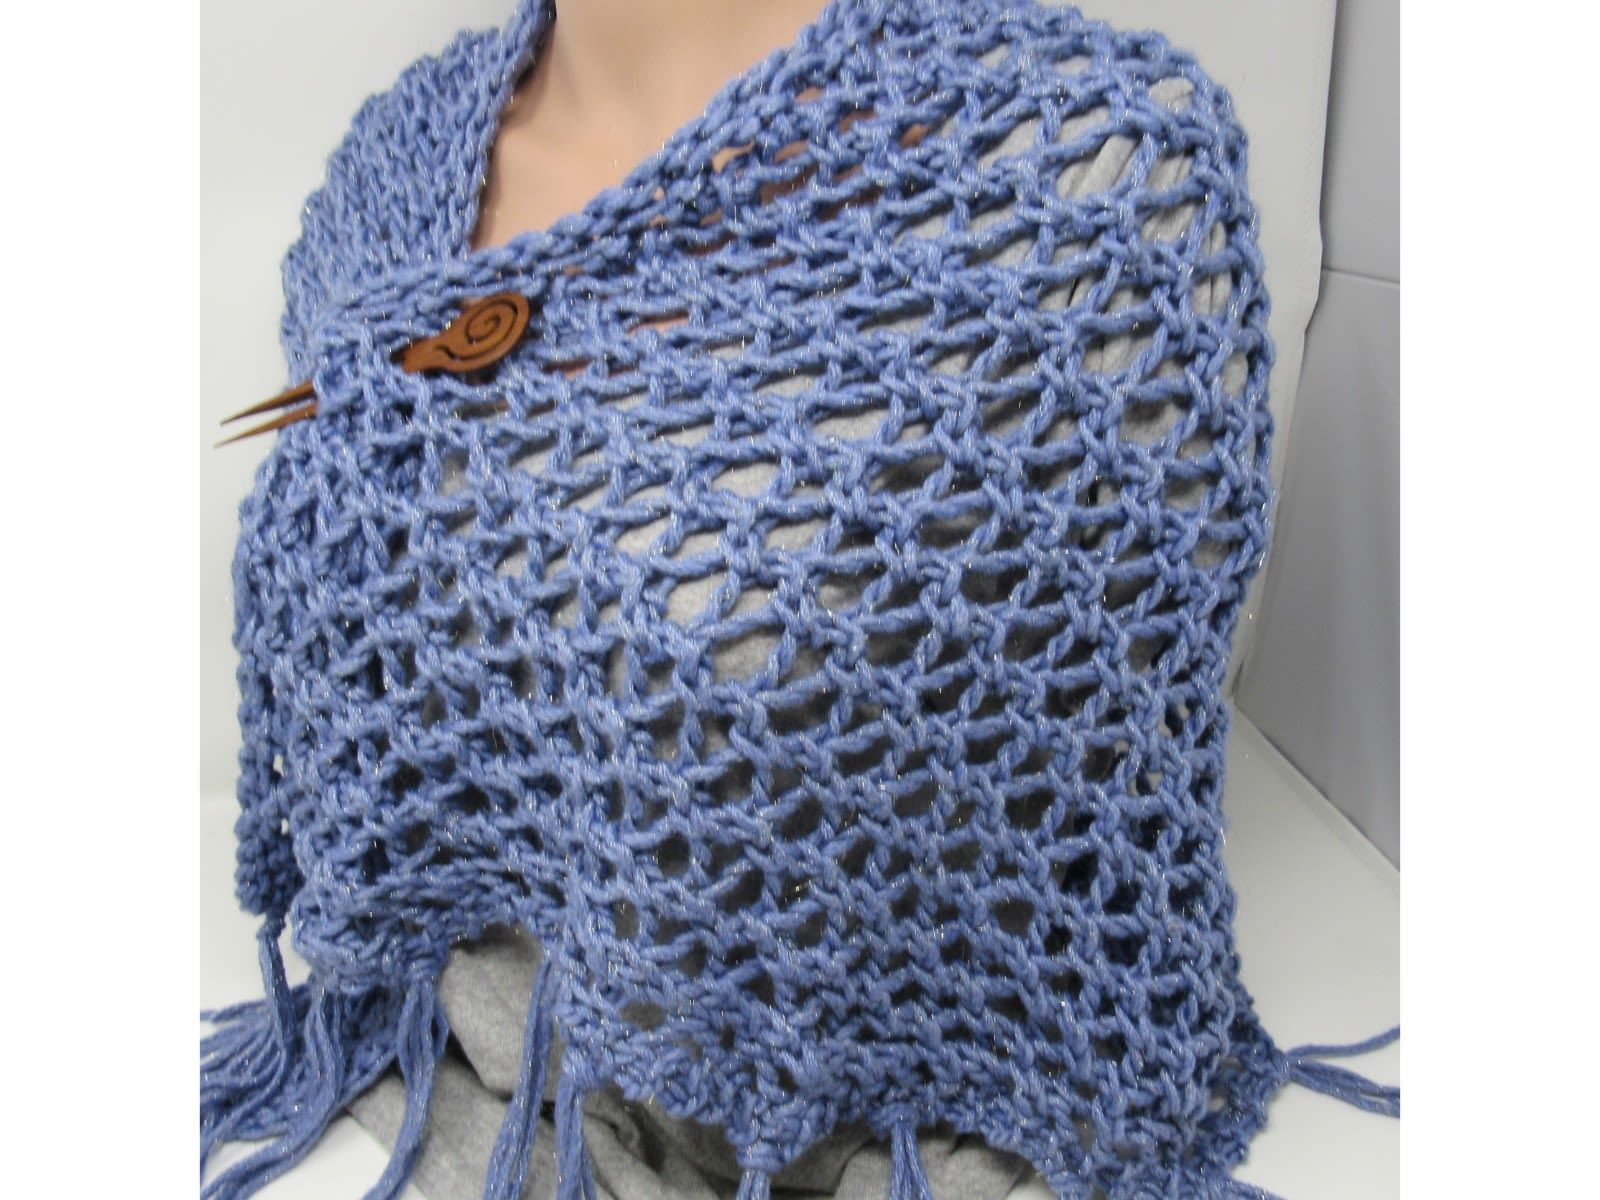 Handcrafted Knitted Shawl Blue Lace Fringes Female Adult